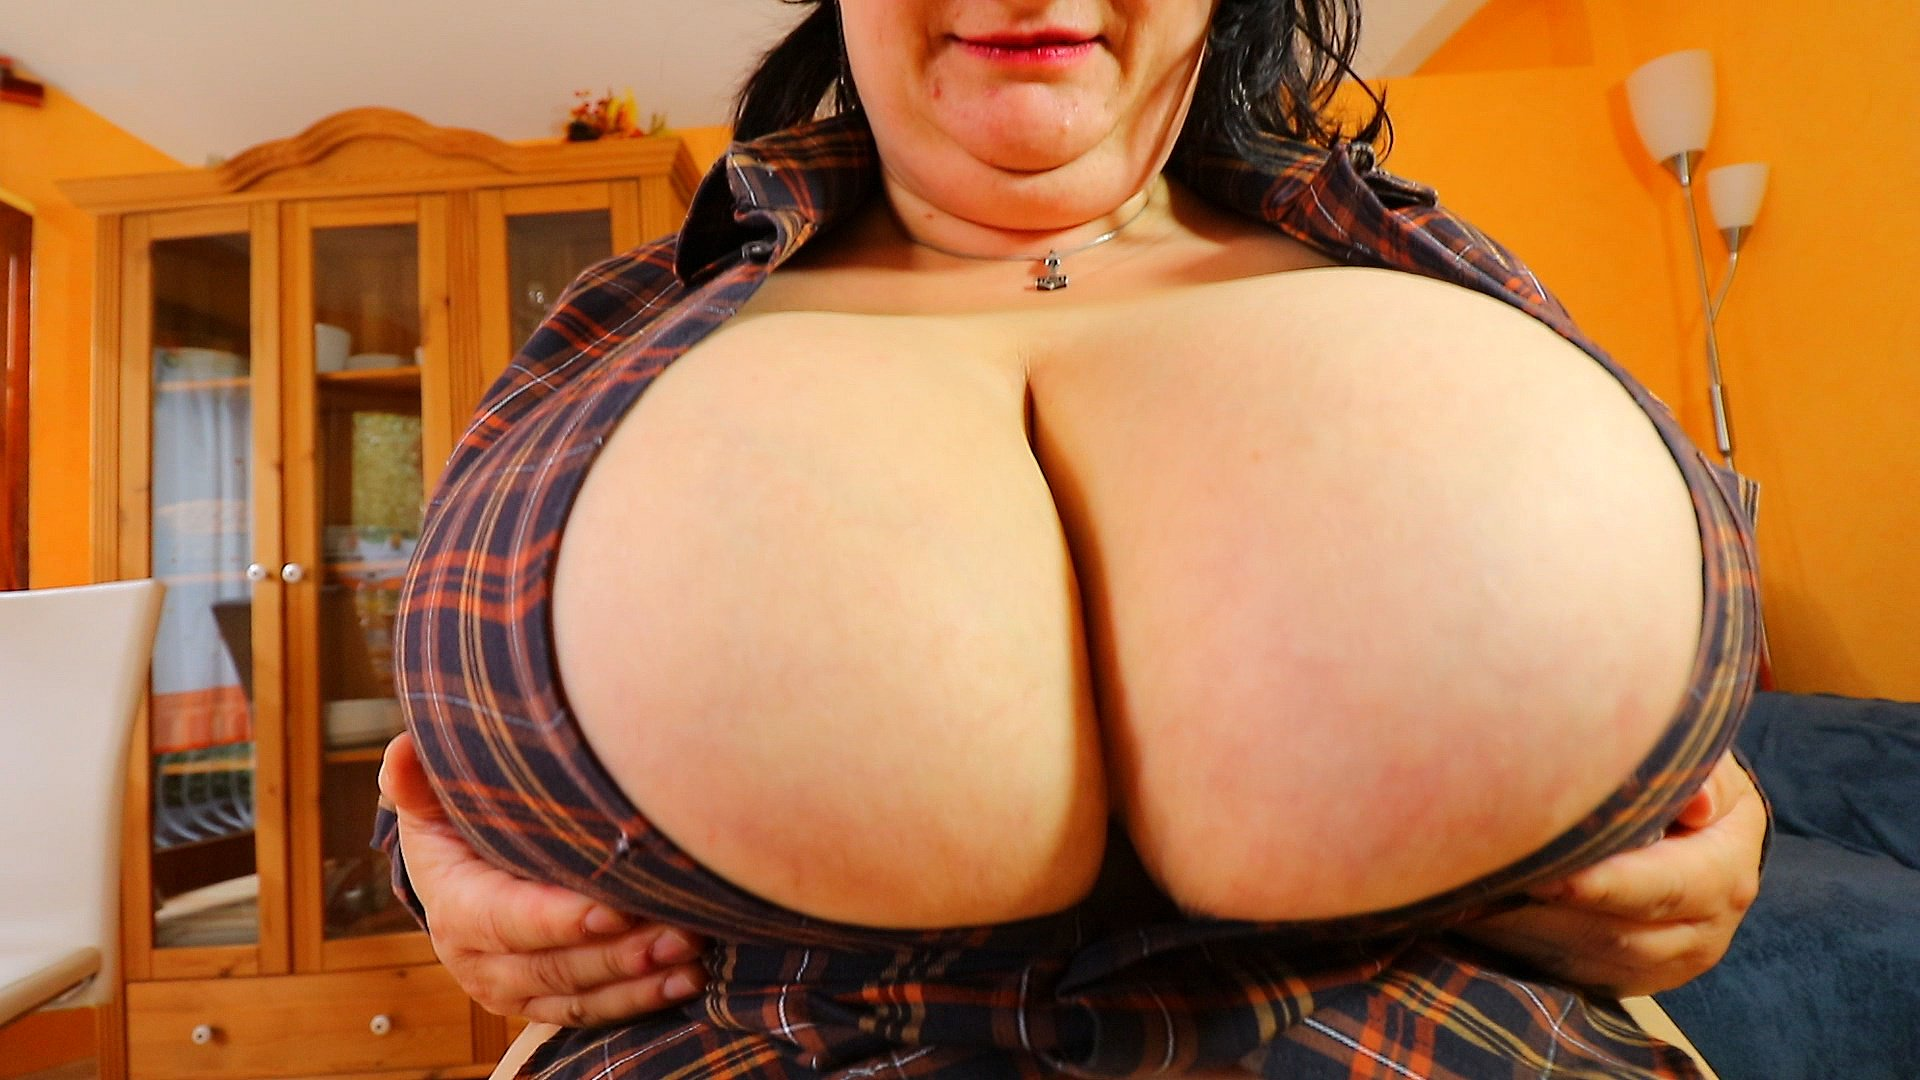 """Maja Magic on Twitter: """"44M boobs burst out of a too small shirt With our new model @sunniva38 ..."""